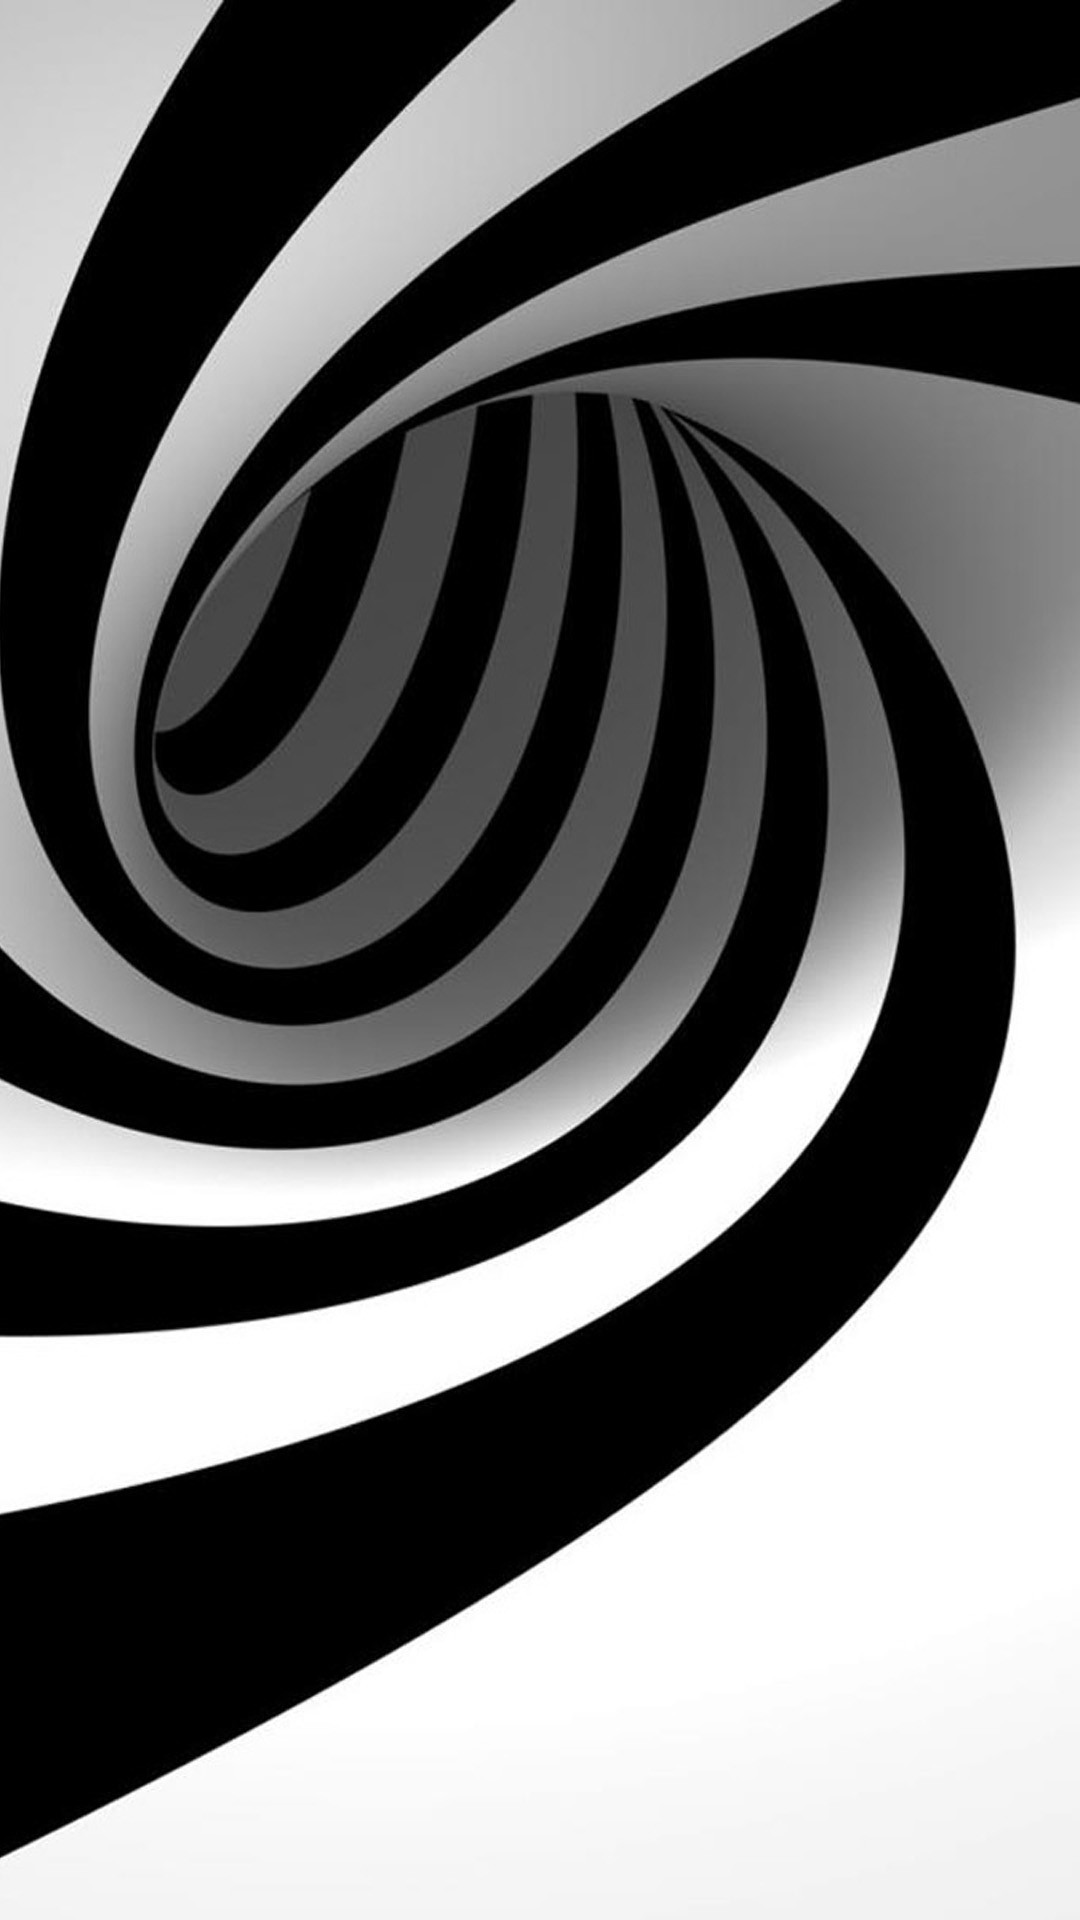 3D Black And White Swirl iPhone 8 wallpaper